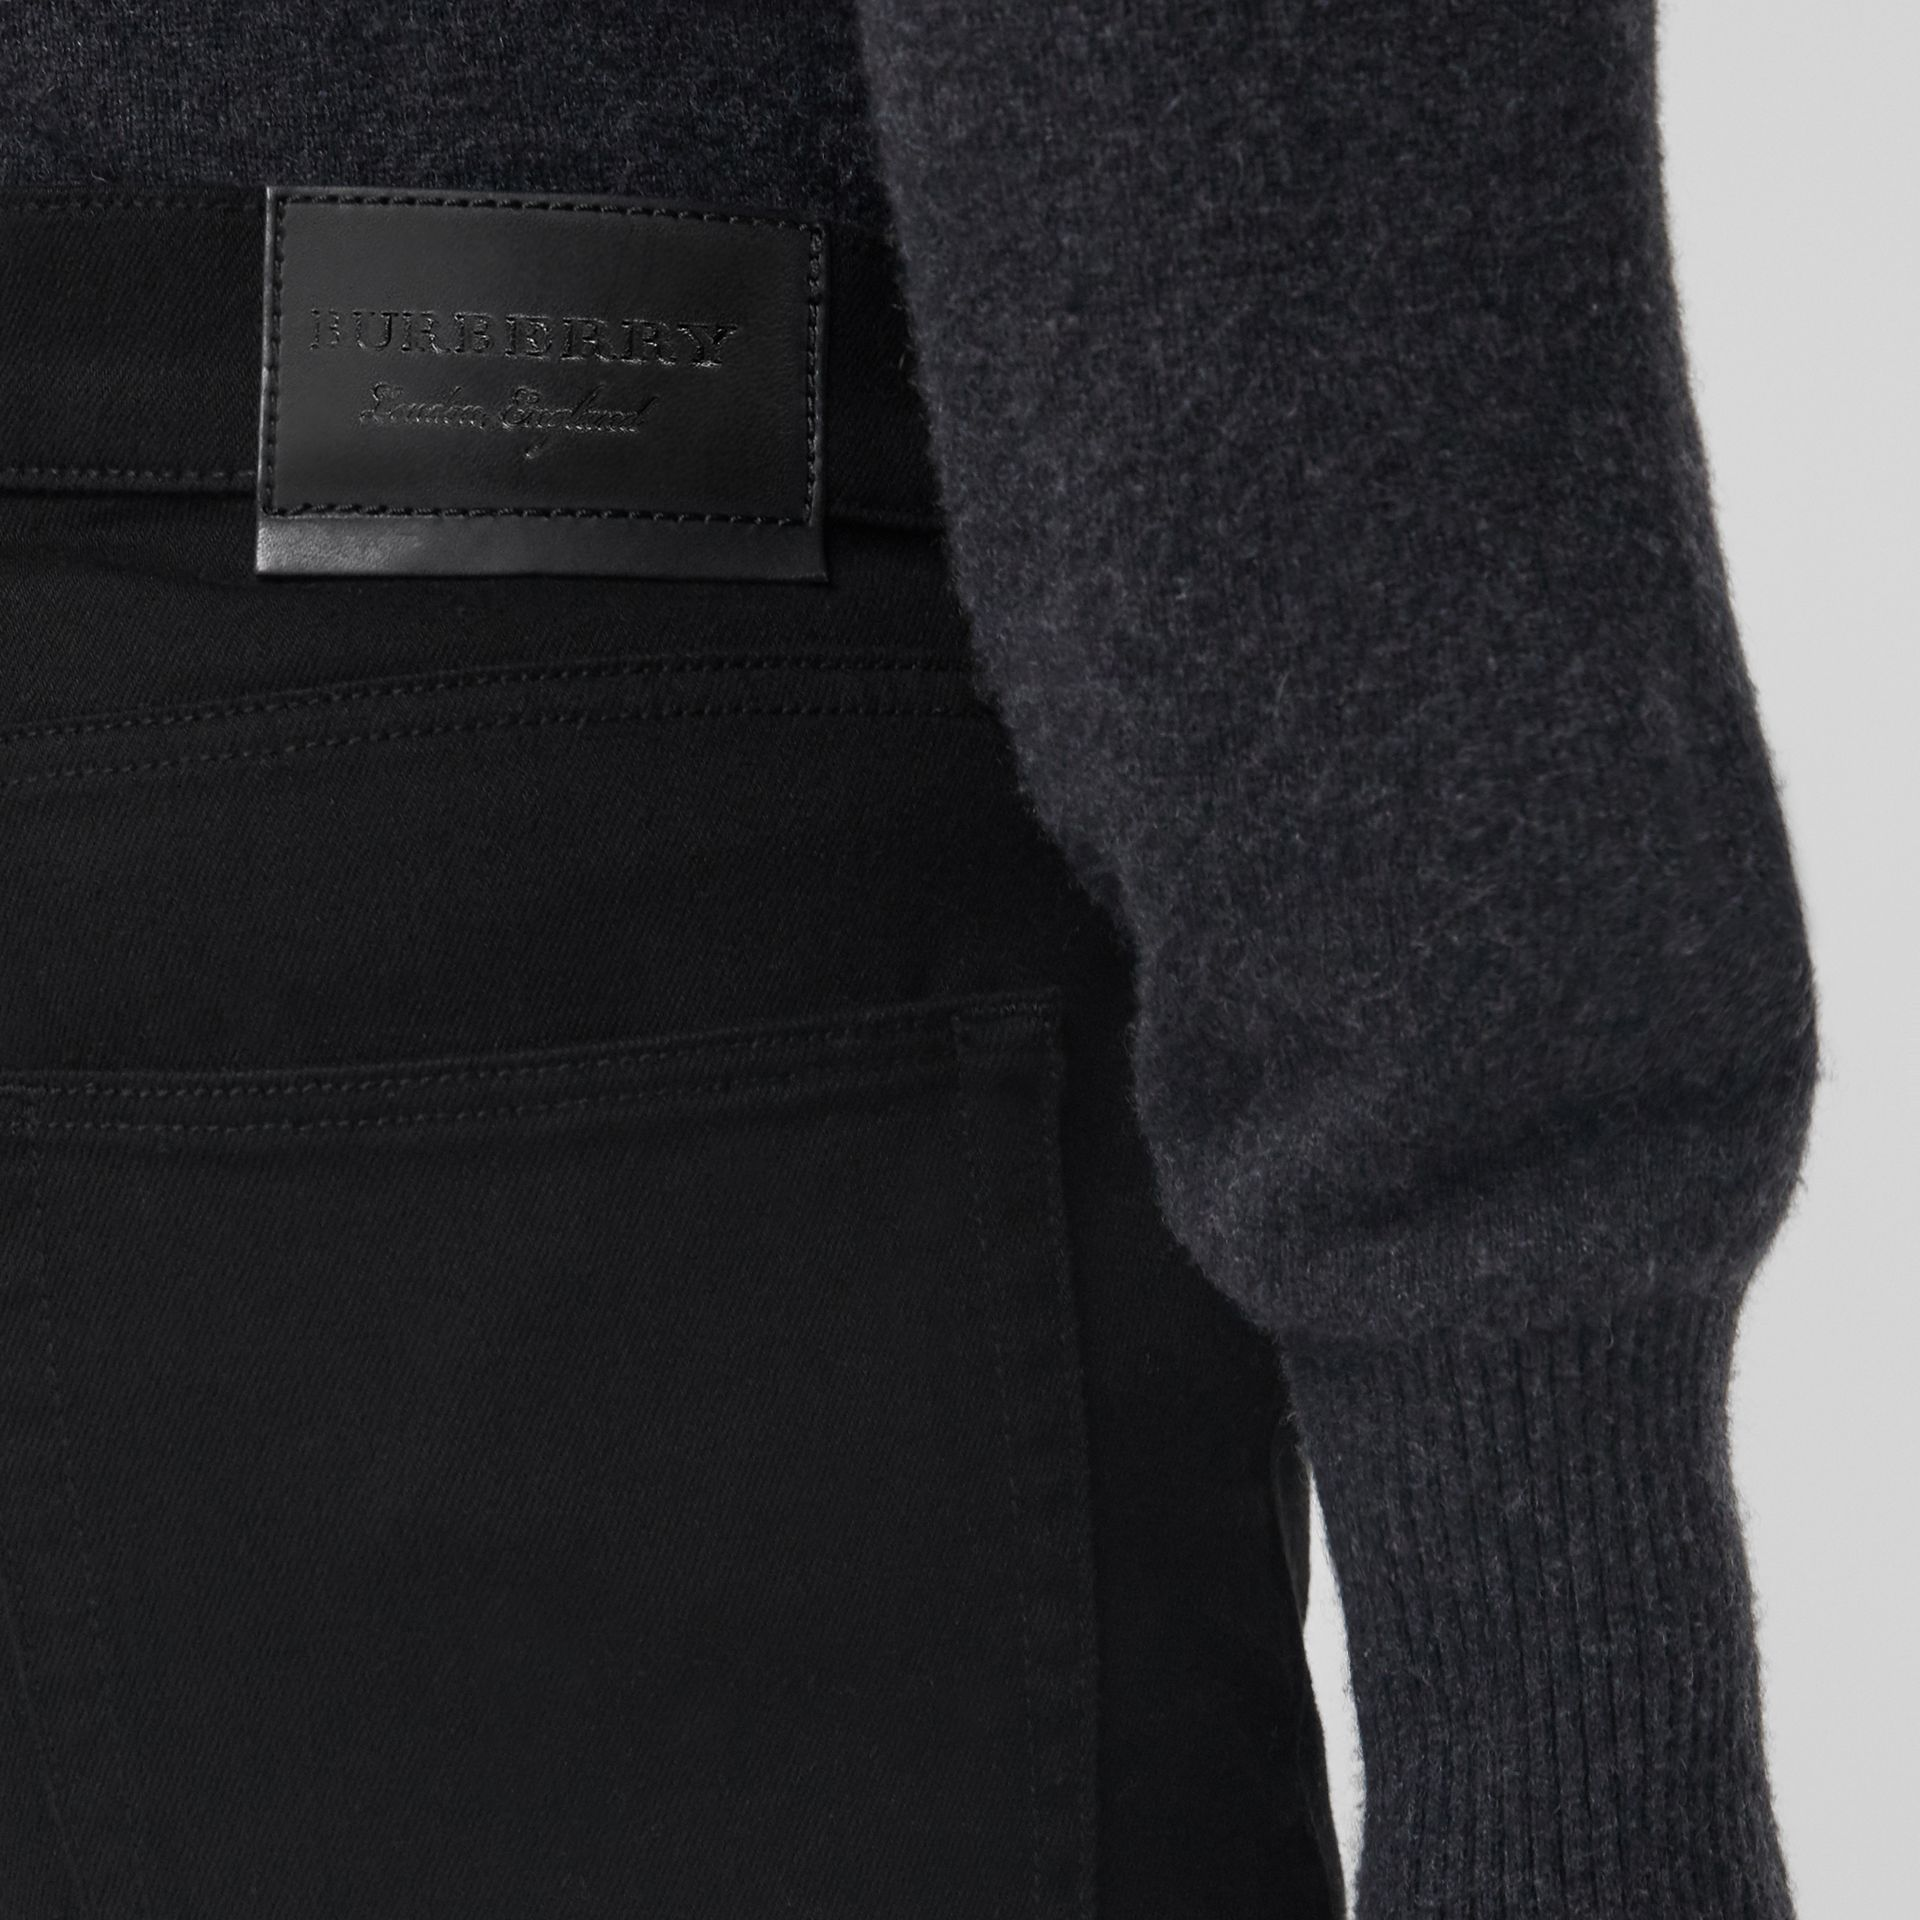 Slim Fit Stretch-denim Jeans in Black - Men | Burberry - gallery image 1